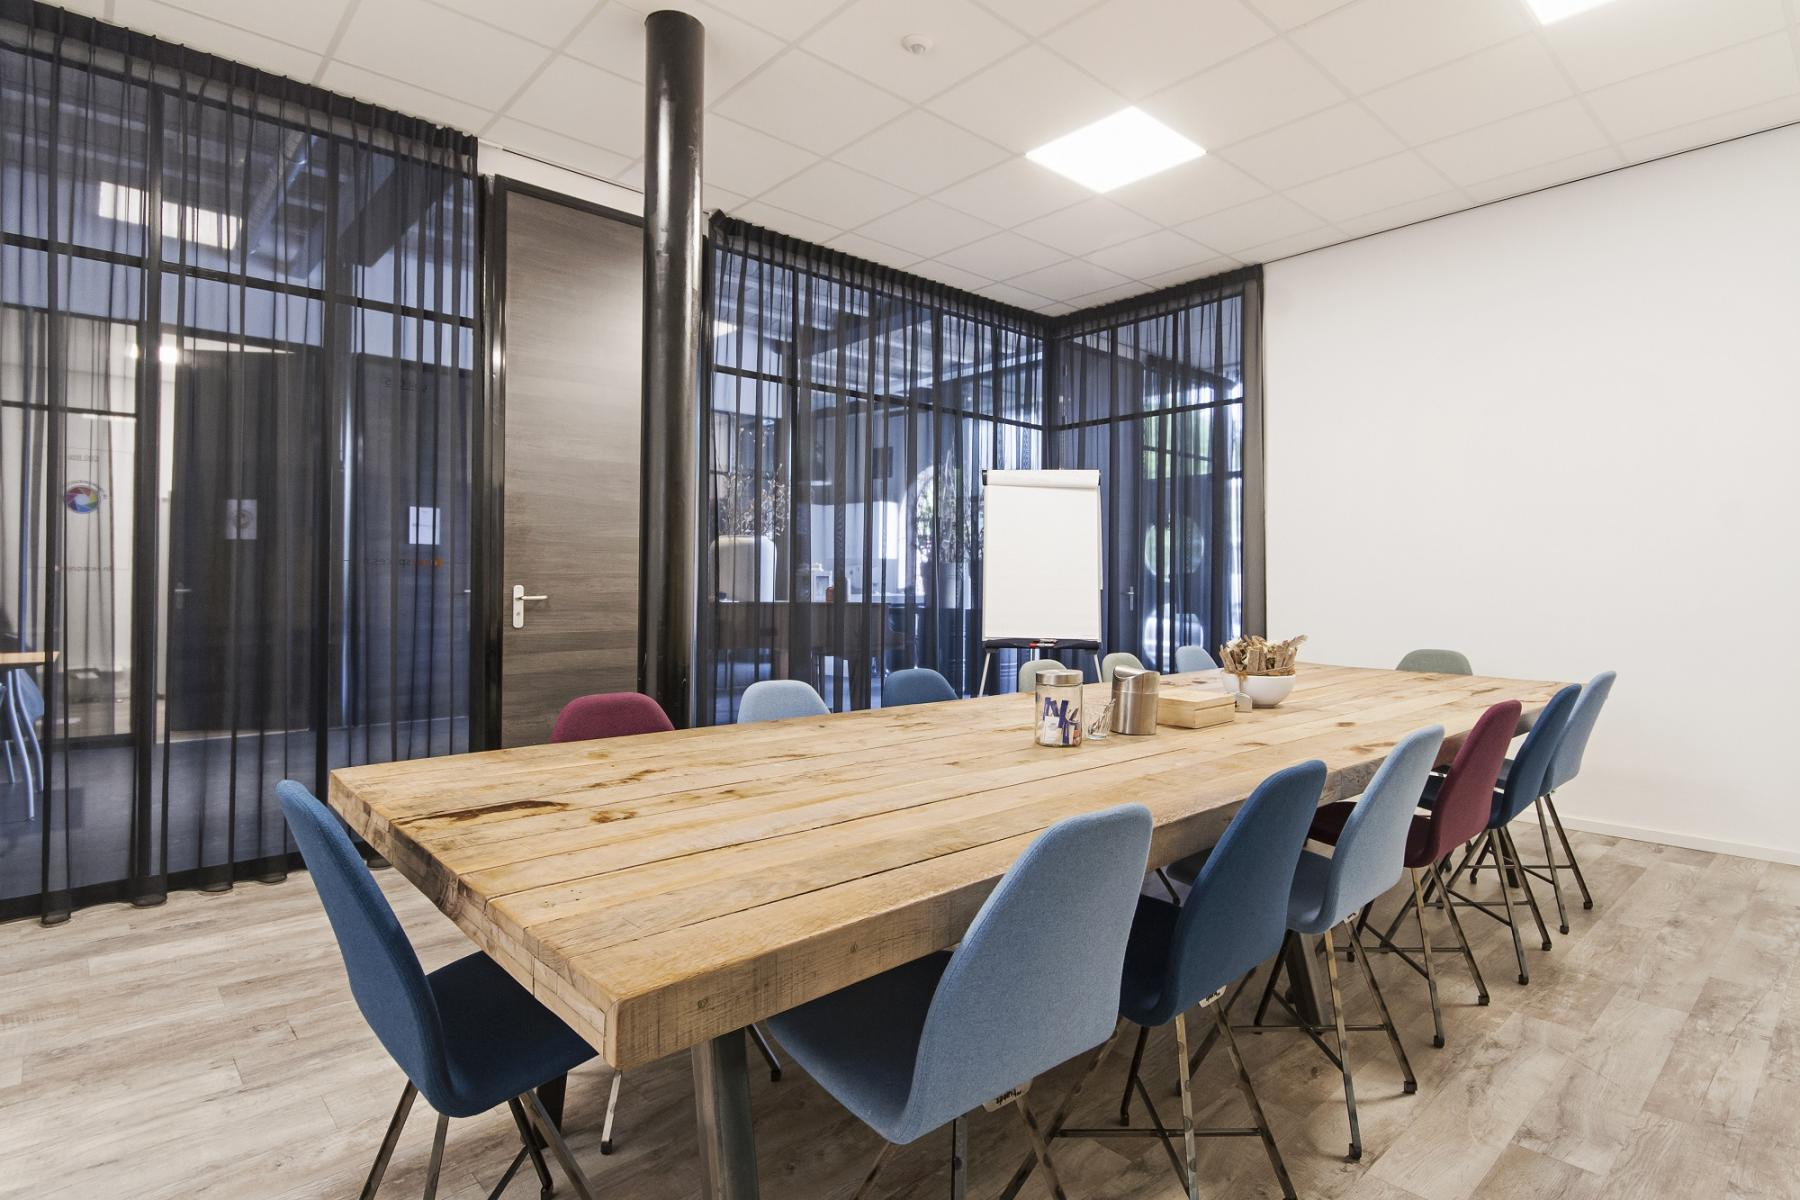 meeting room for rent in bergen op zoom coloured chairs